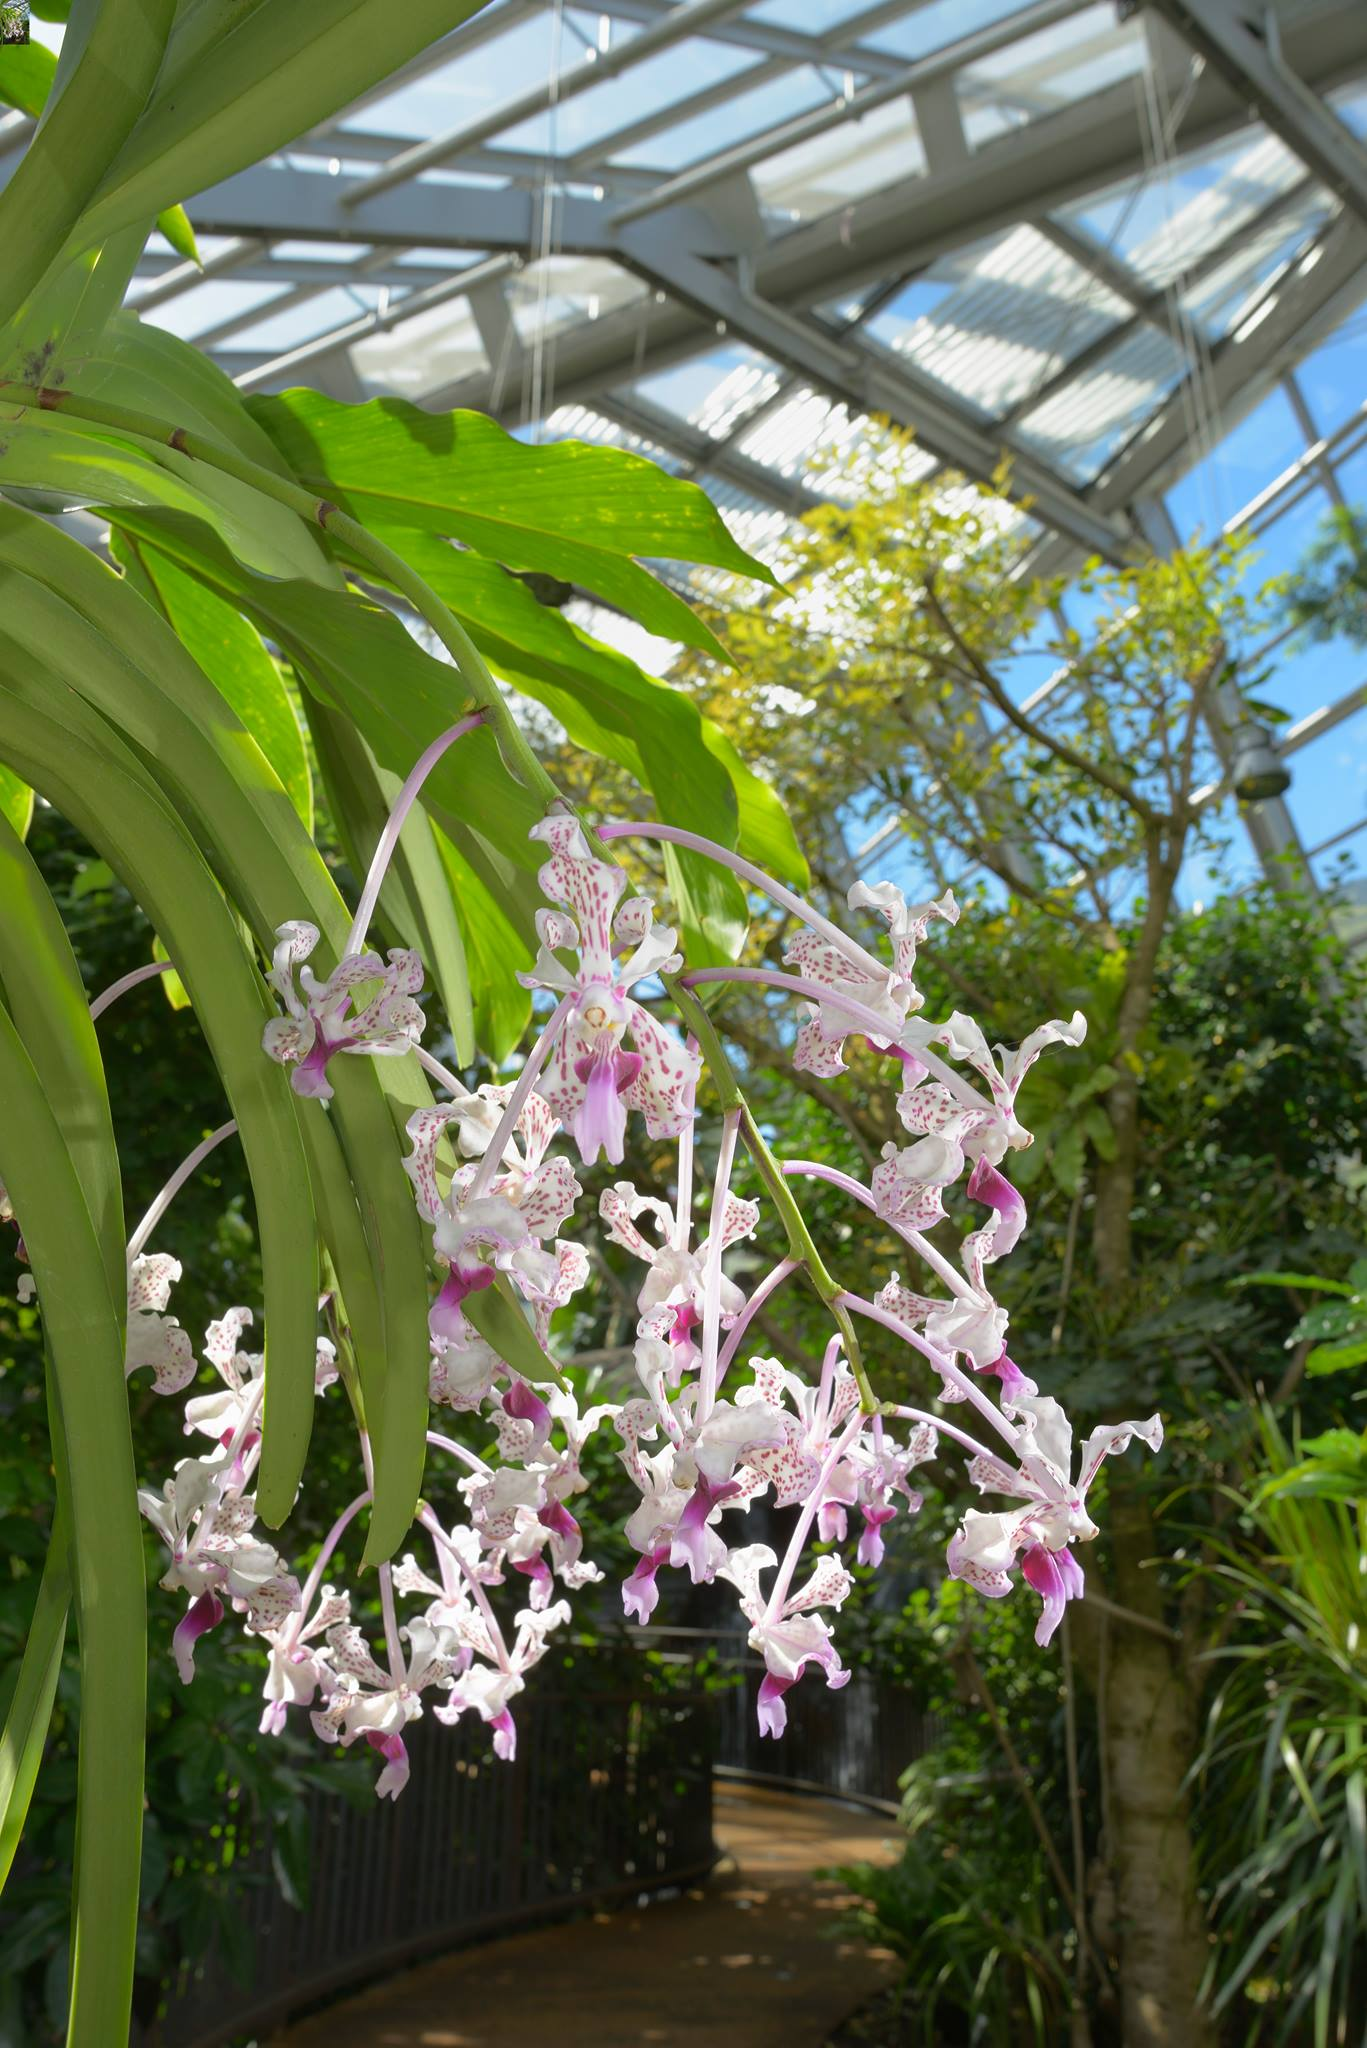 MUSE MUSEO DELLE SCIENZE | ORCHIDS@MUSE